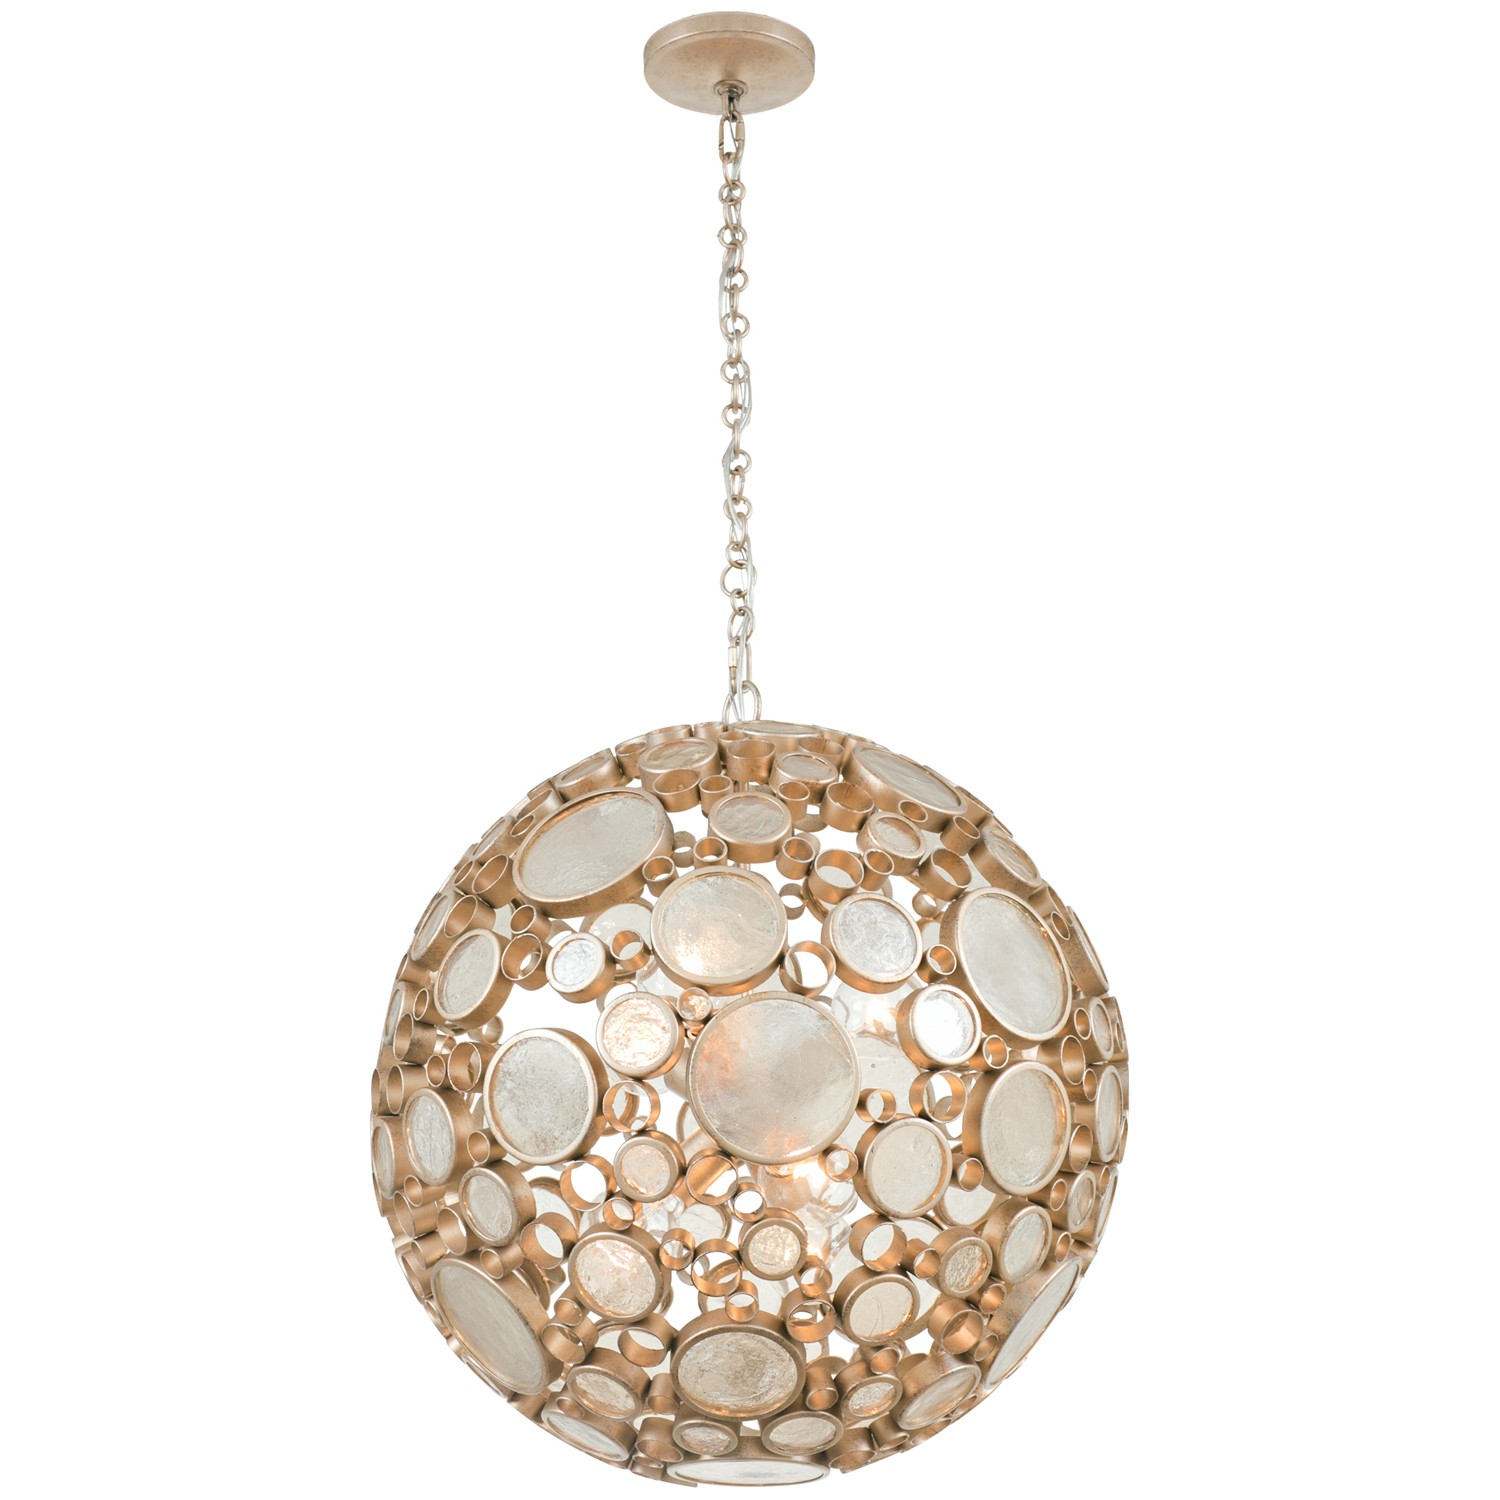 Upcycled Modern Lighting | YLighting Fascination 6 Light Orb Pendant ...  sc 1 st  YLighting & Upcycled Modern Lighting | Design Necessities Lighting azcodes.com